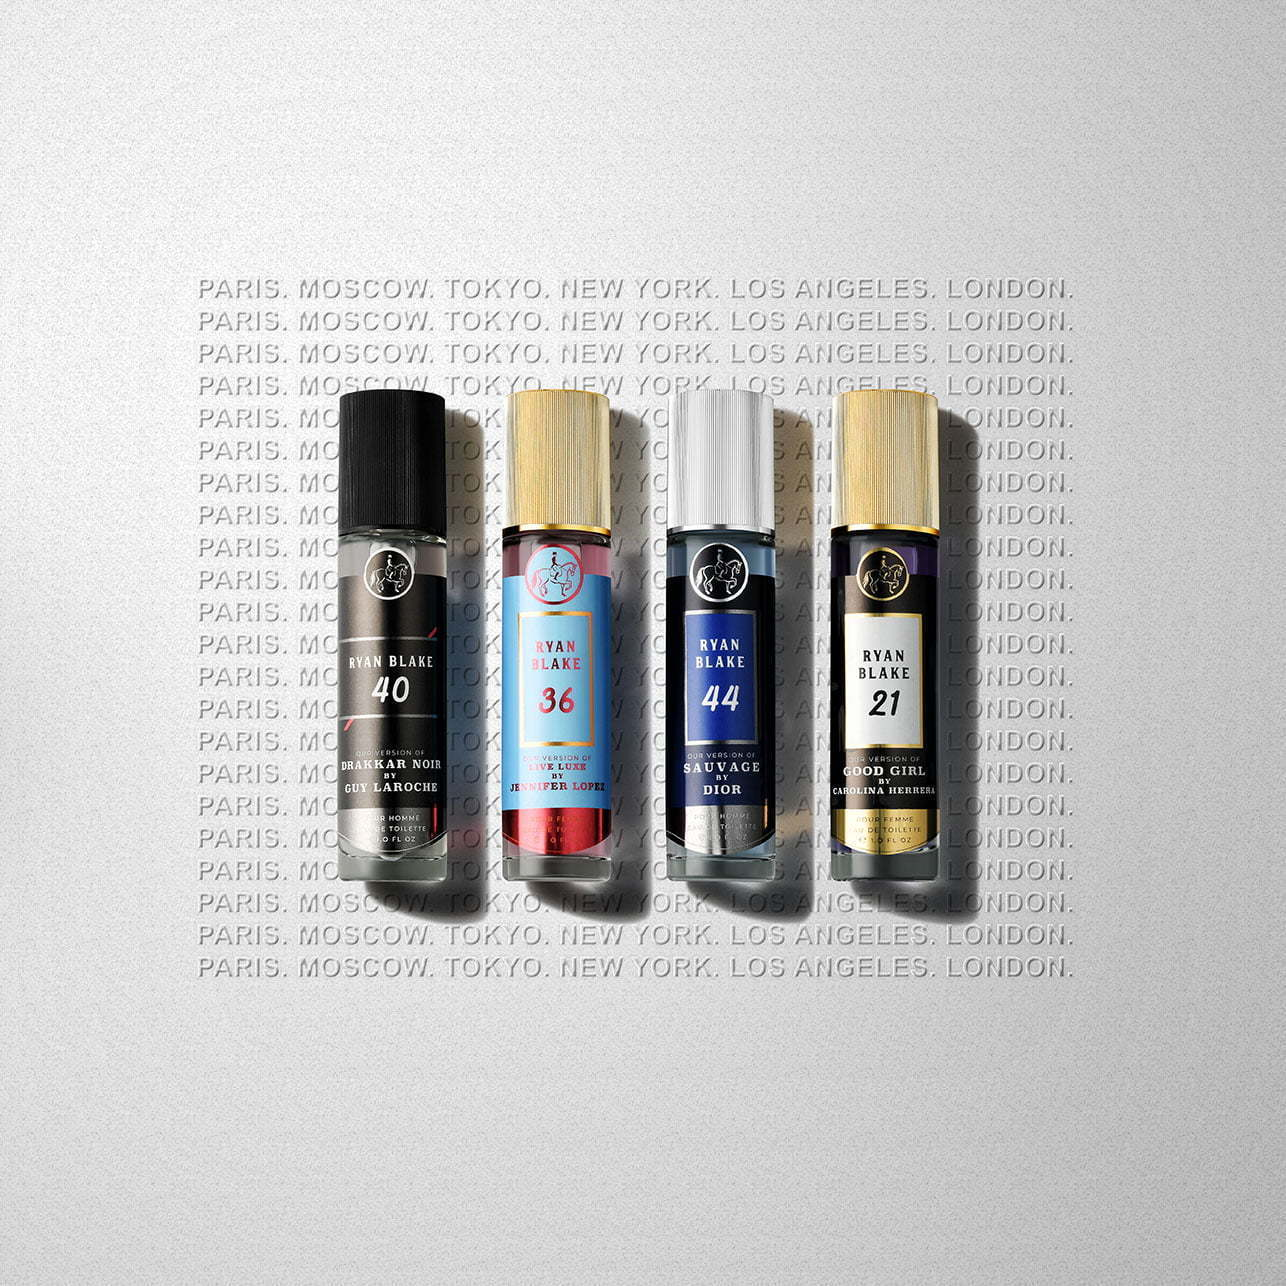 perfume image laying on top of a gray background with writing